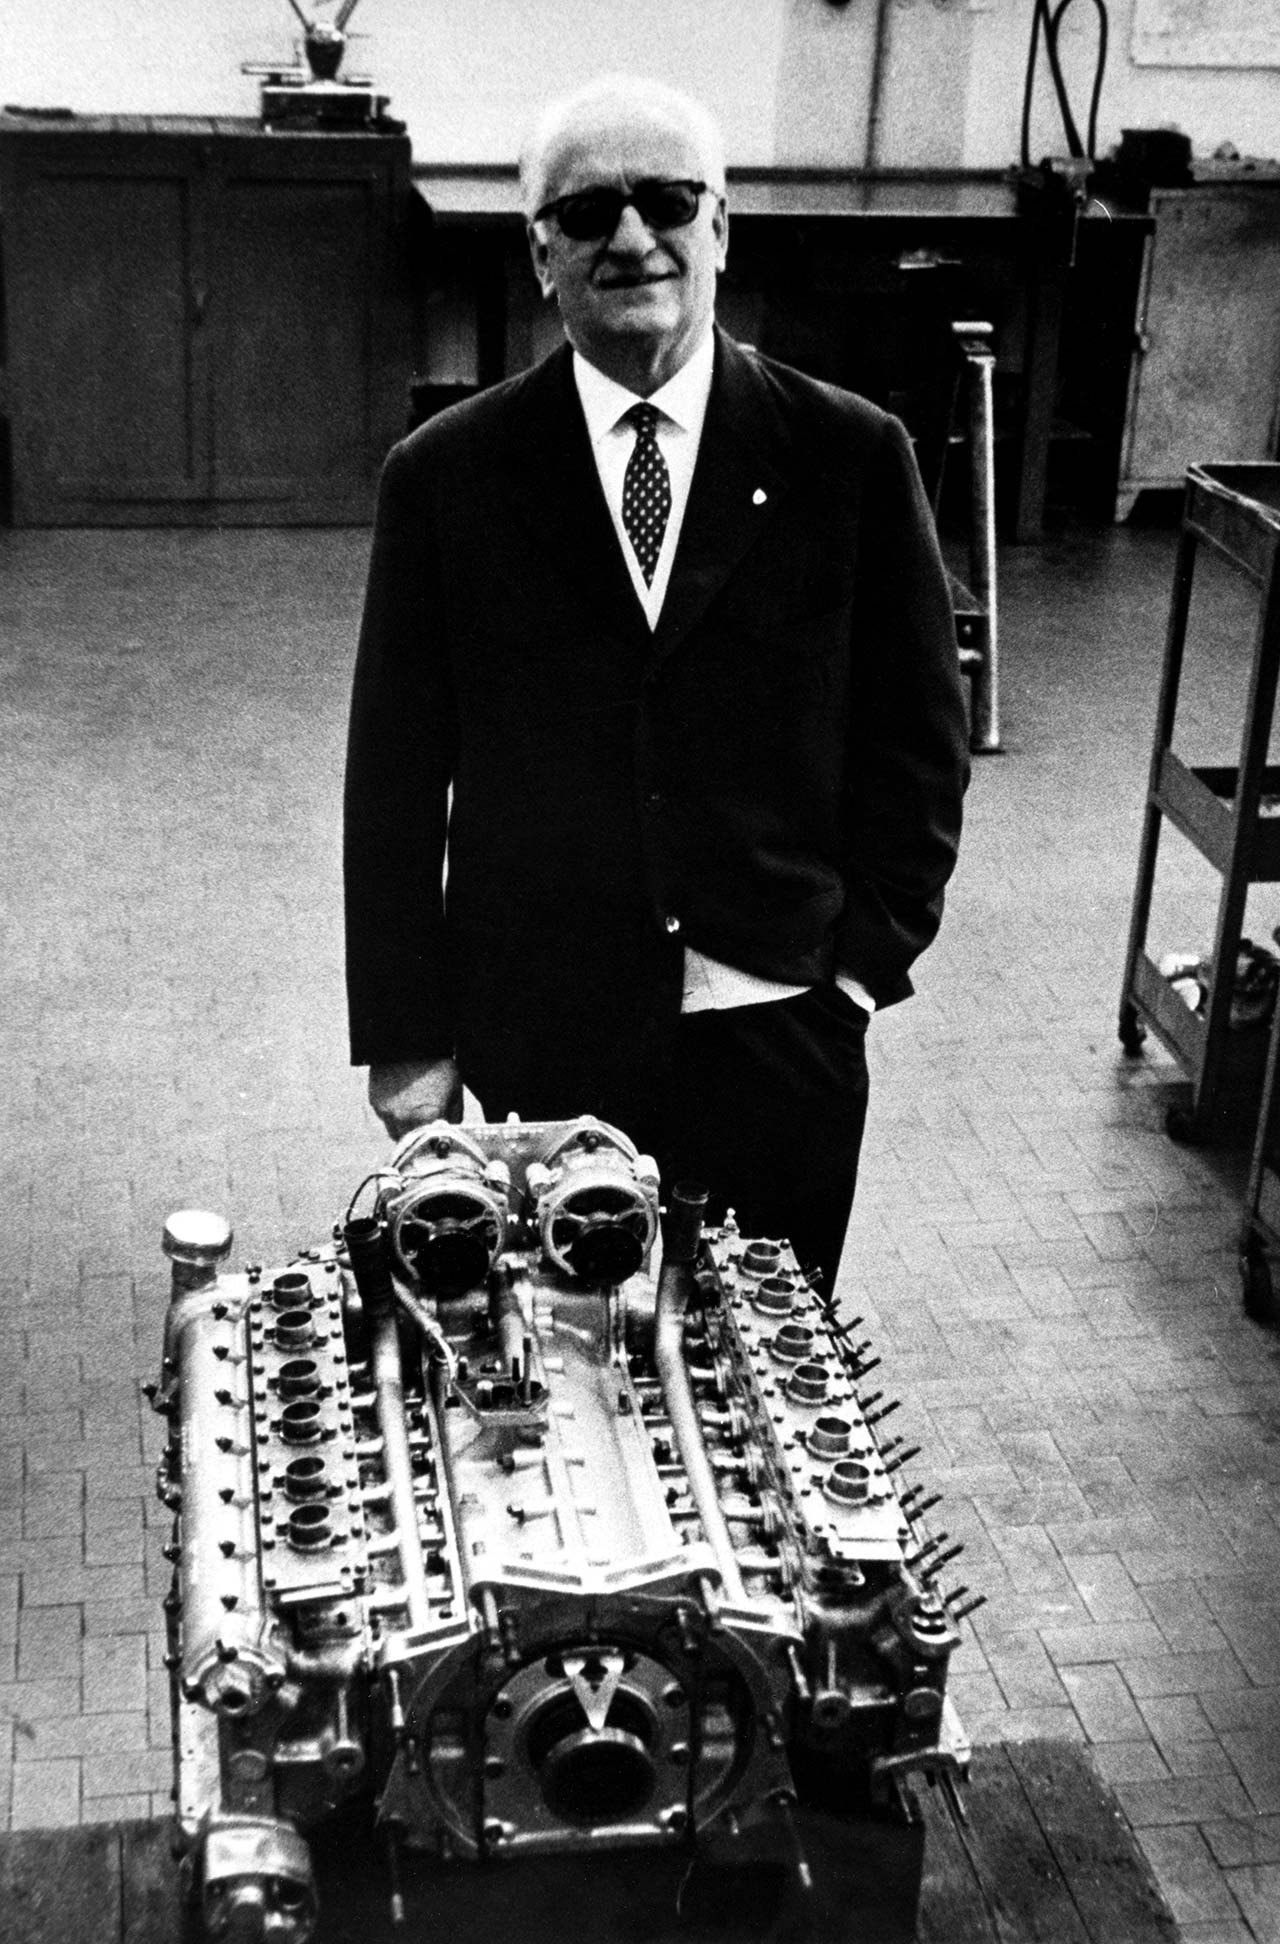 Enzo Ferrari, 1972. Photo courtesy of Ferrari.